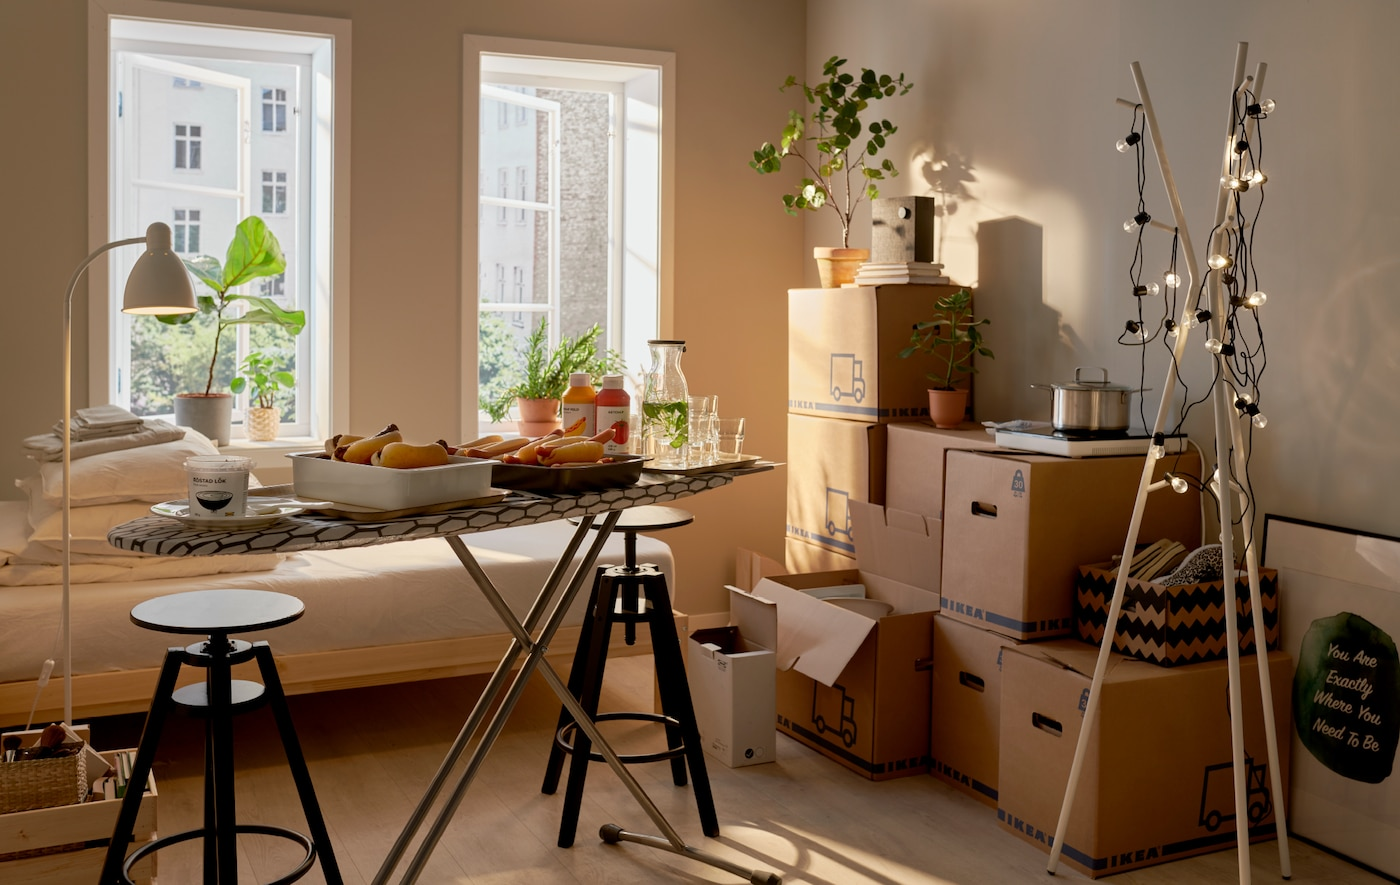 A room mid-moving in with stacked moving boxes, a small buffet served on an ironing board and a decorated EKRAR coat stand.